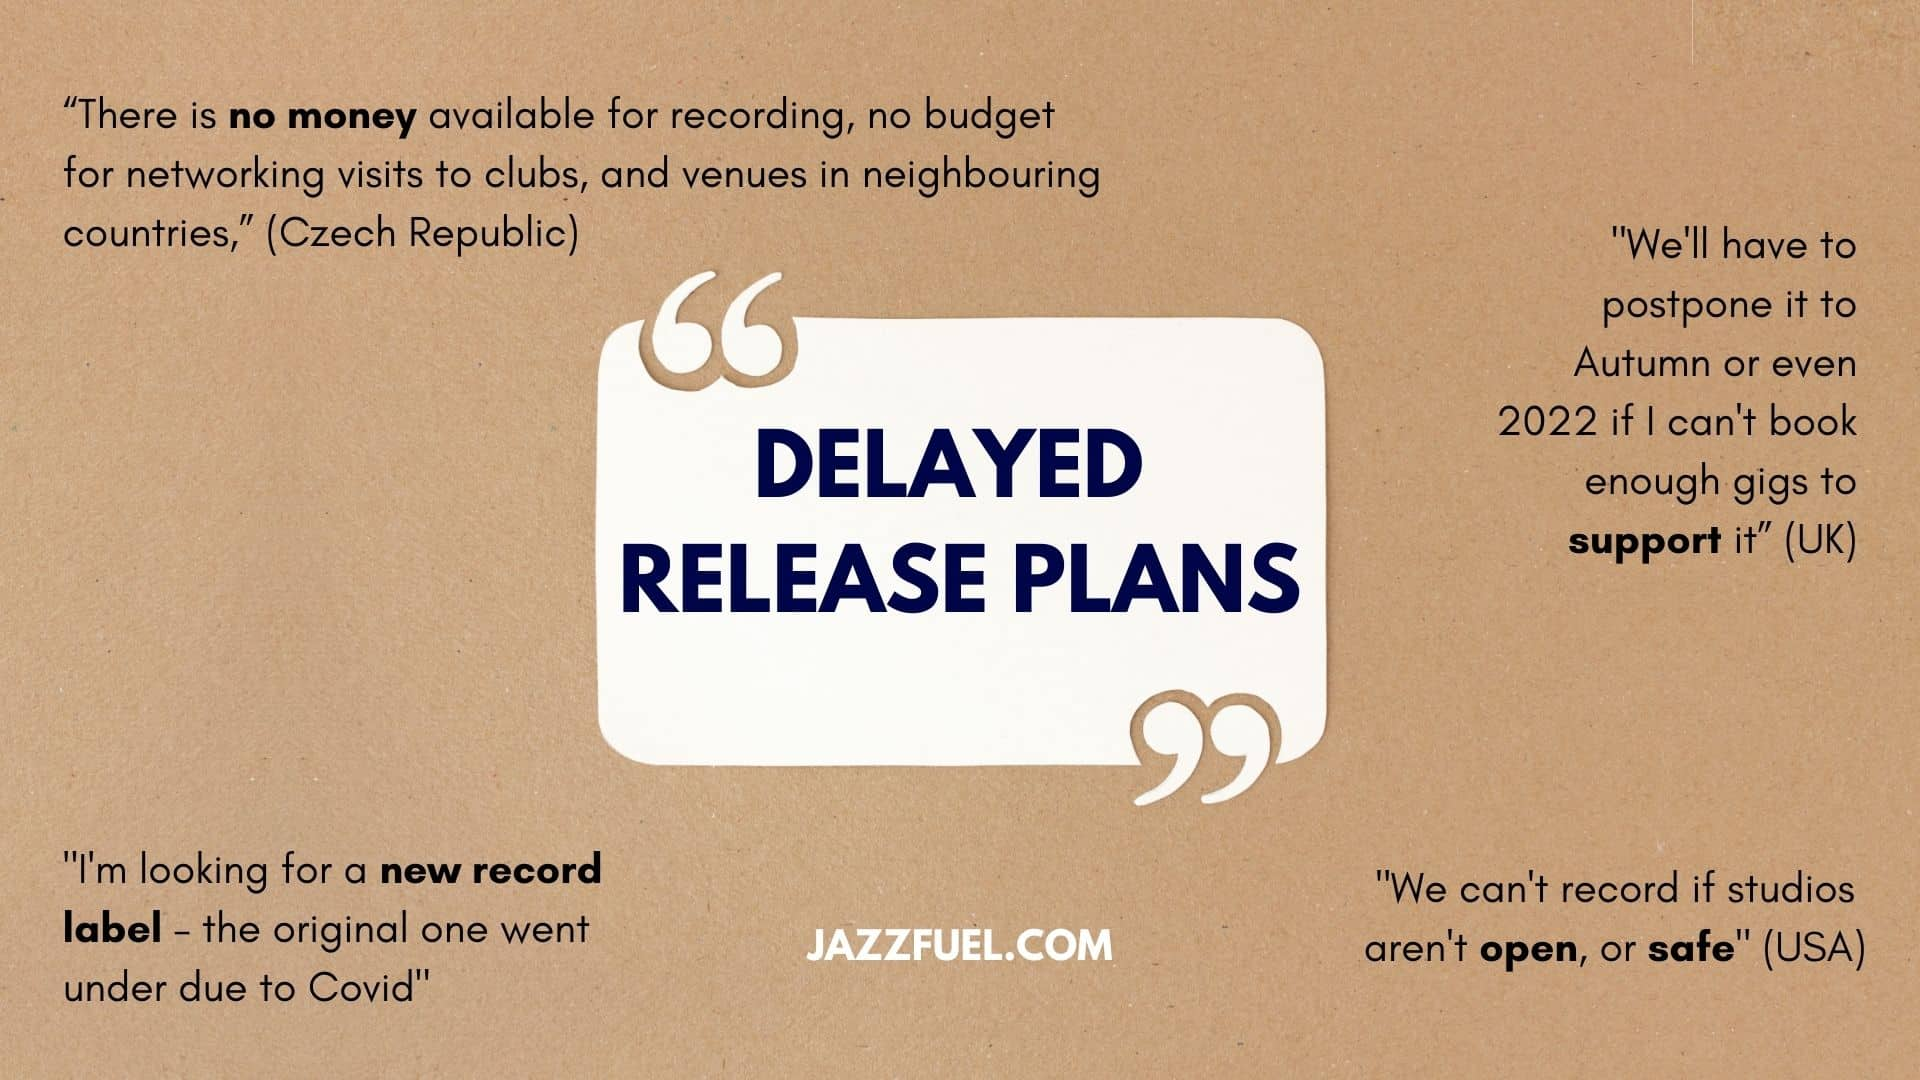 delayed release plans